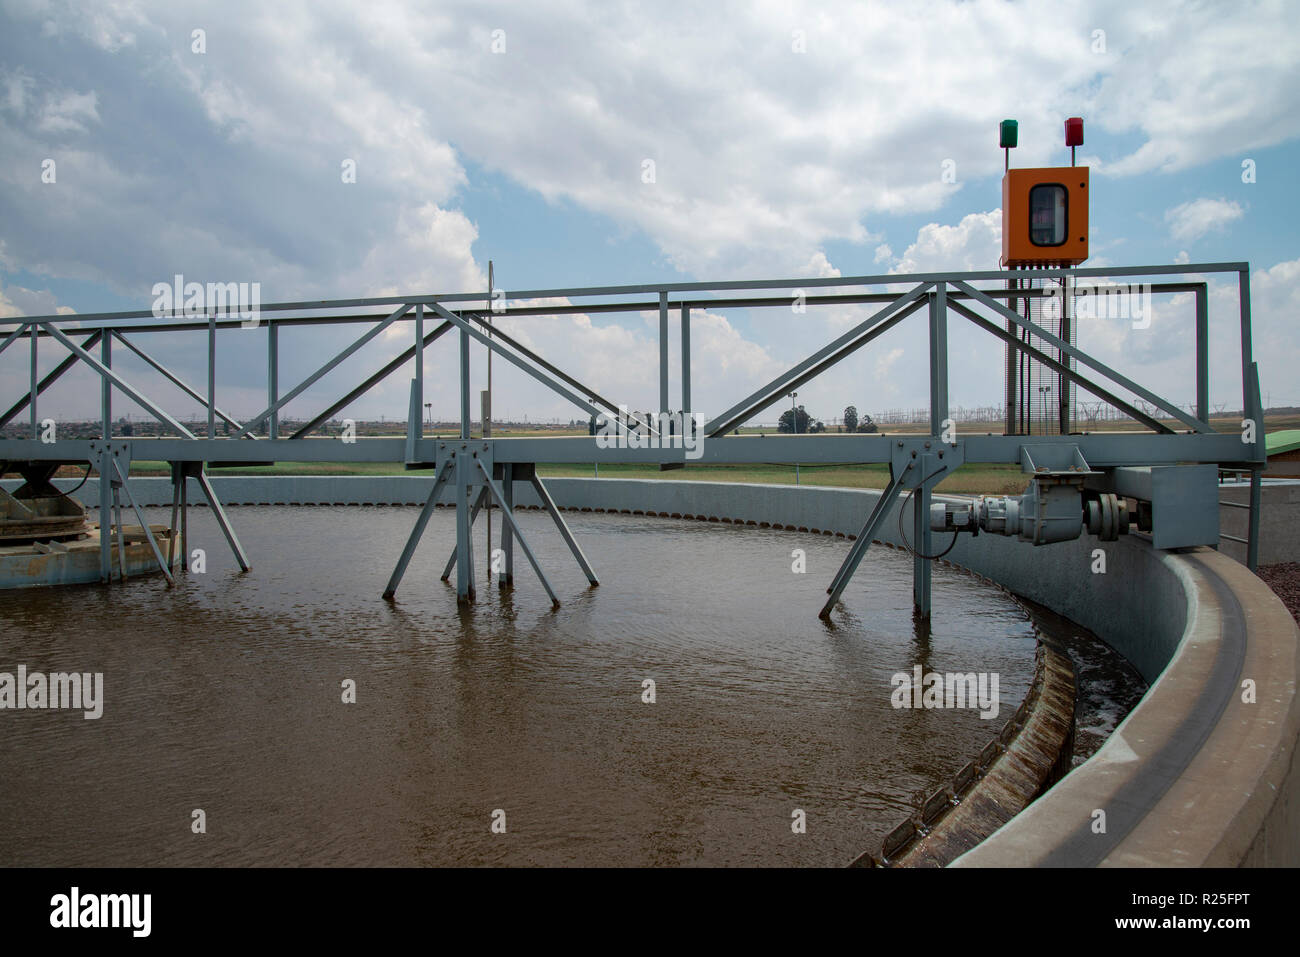 A water treatment plant in Witbank, South Africa  This image